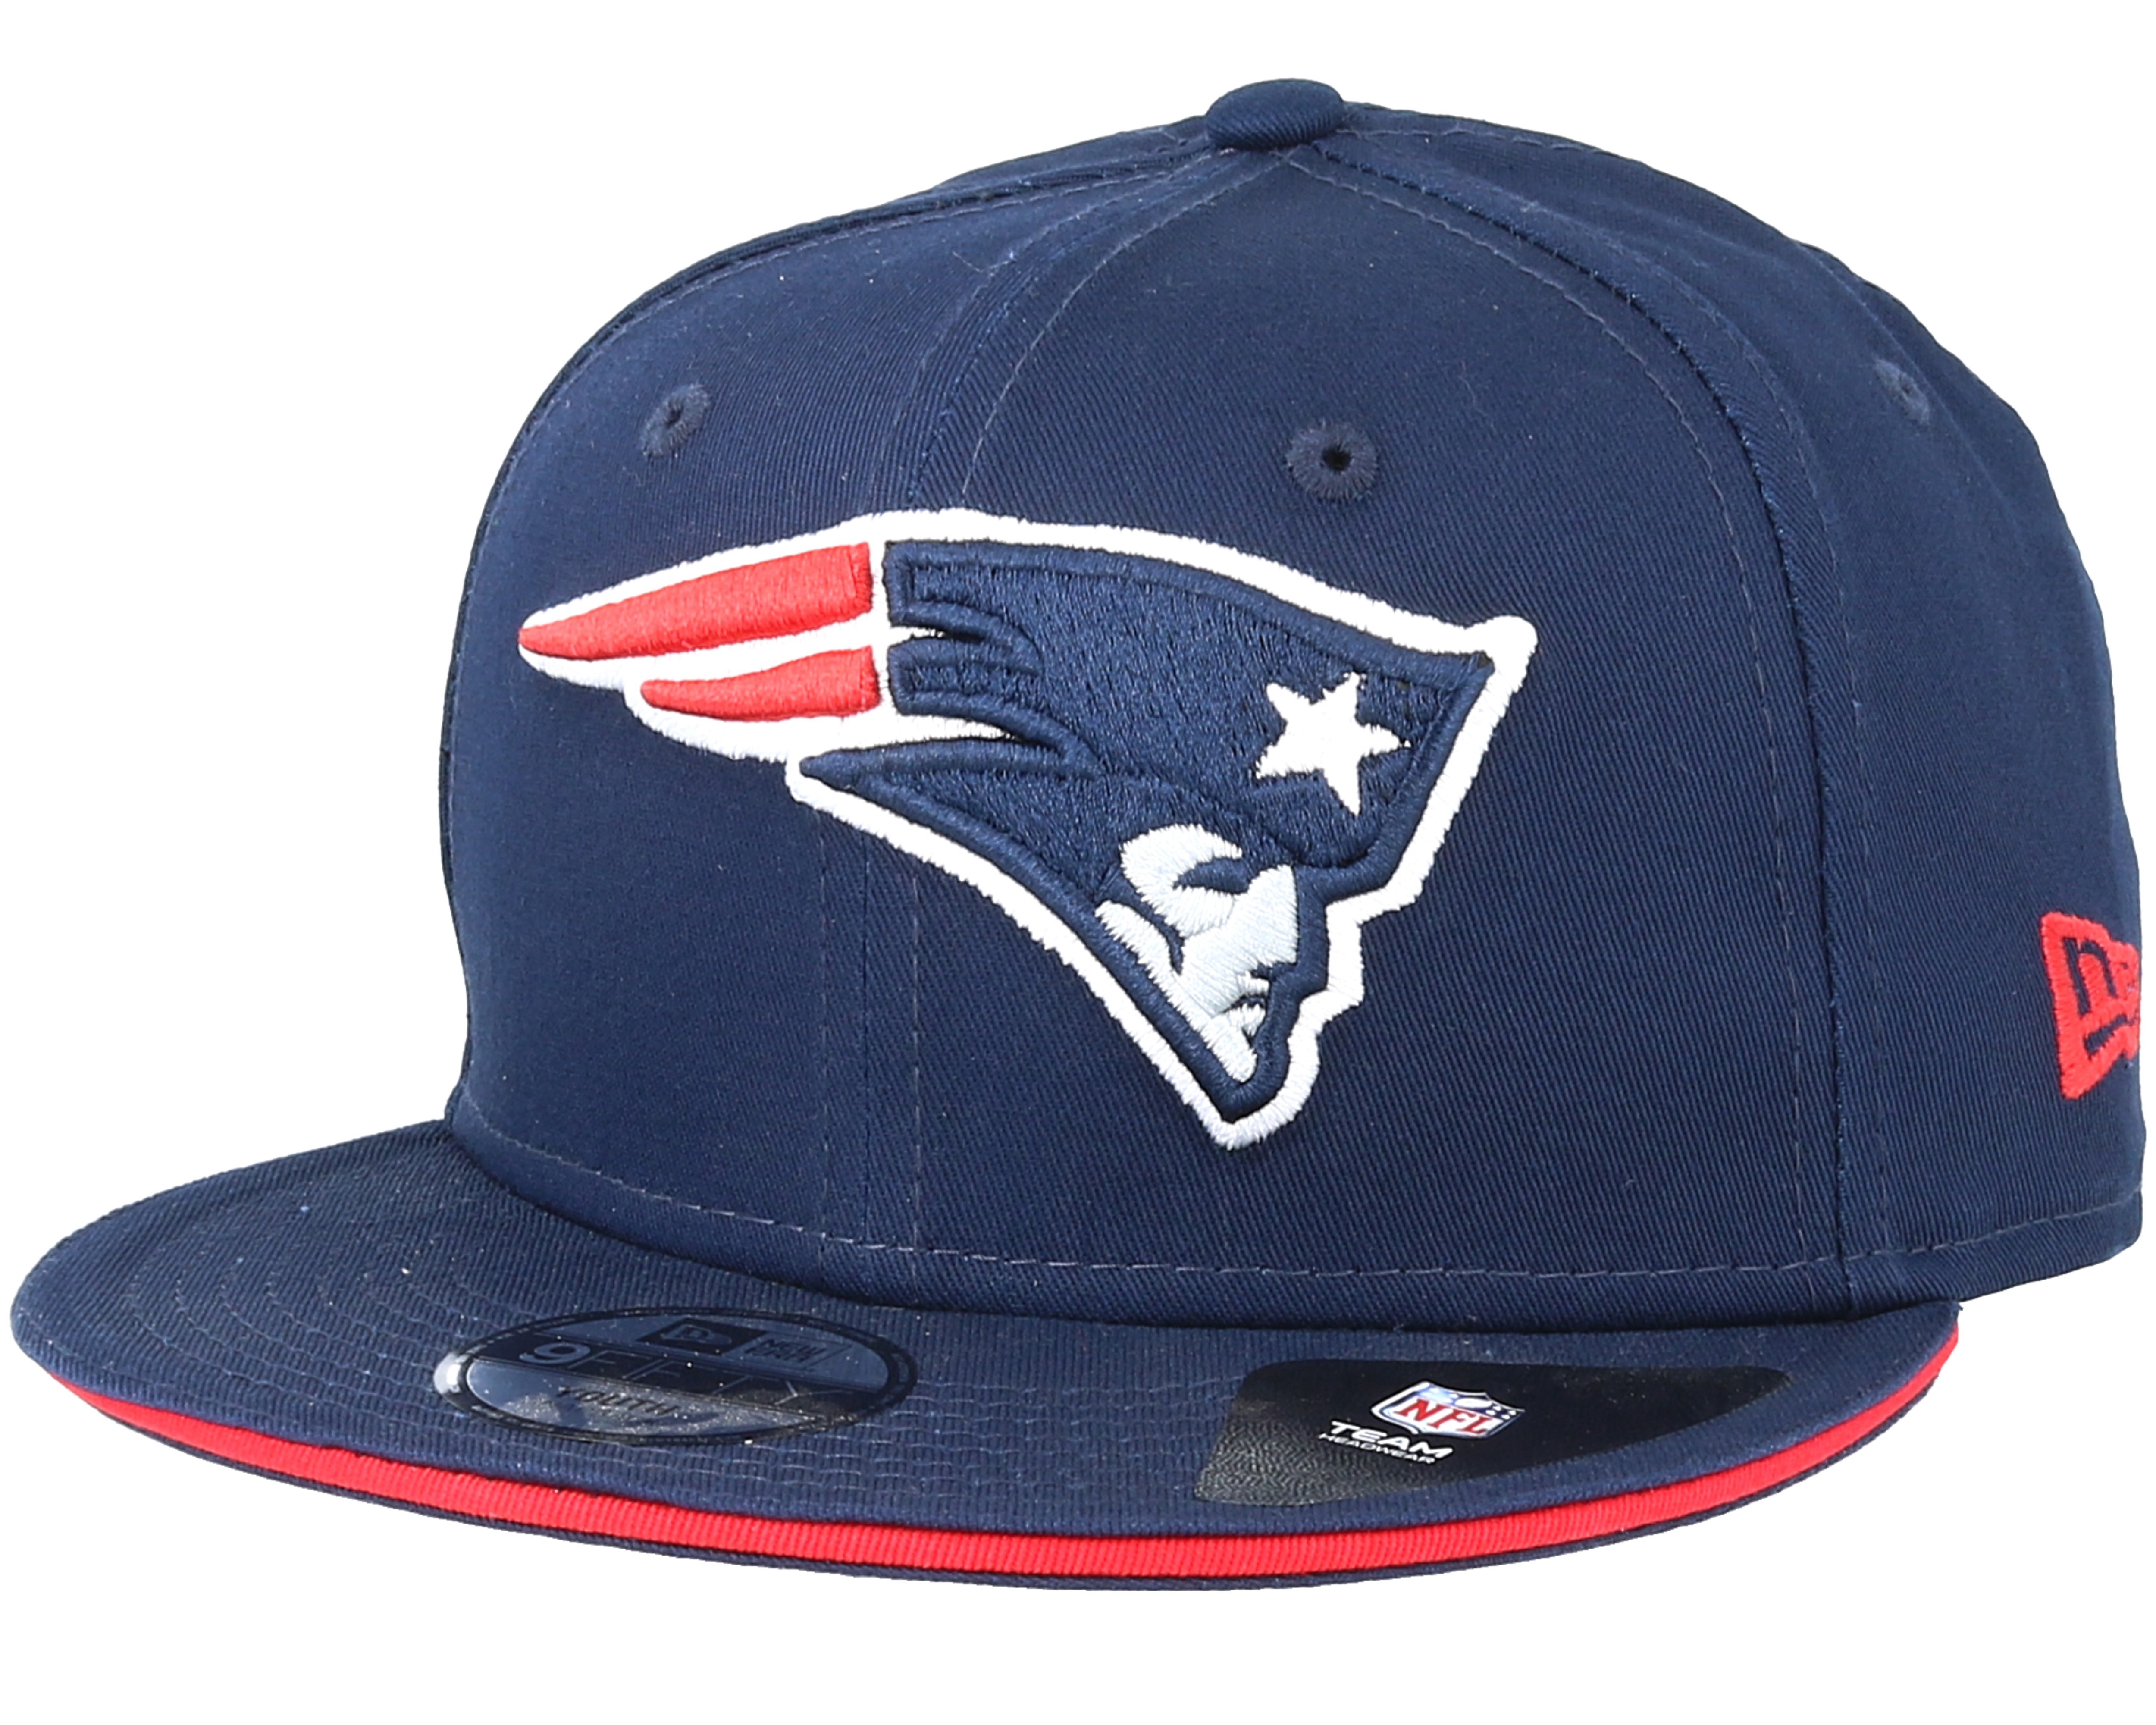 New England Patriots Apparel, Patriots Merchandise Store truezloadmw.ga has signature New England Patriots apparel featuring NE Patriots shirts, hats and merchandise in stock and ready to ship! From Breast Cancer Awareness to Salute to Service, every fan can wear all .